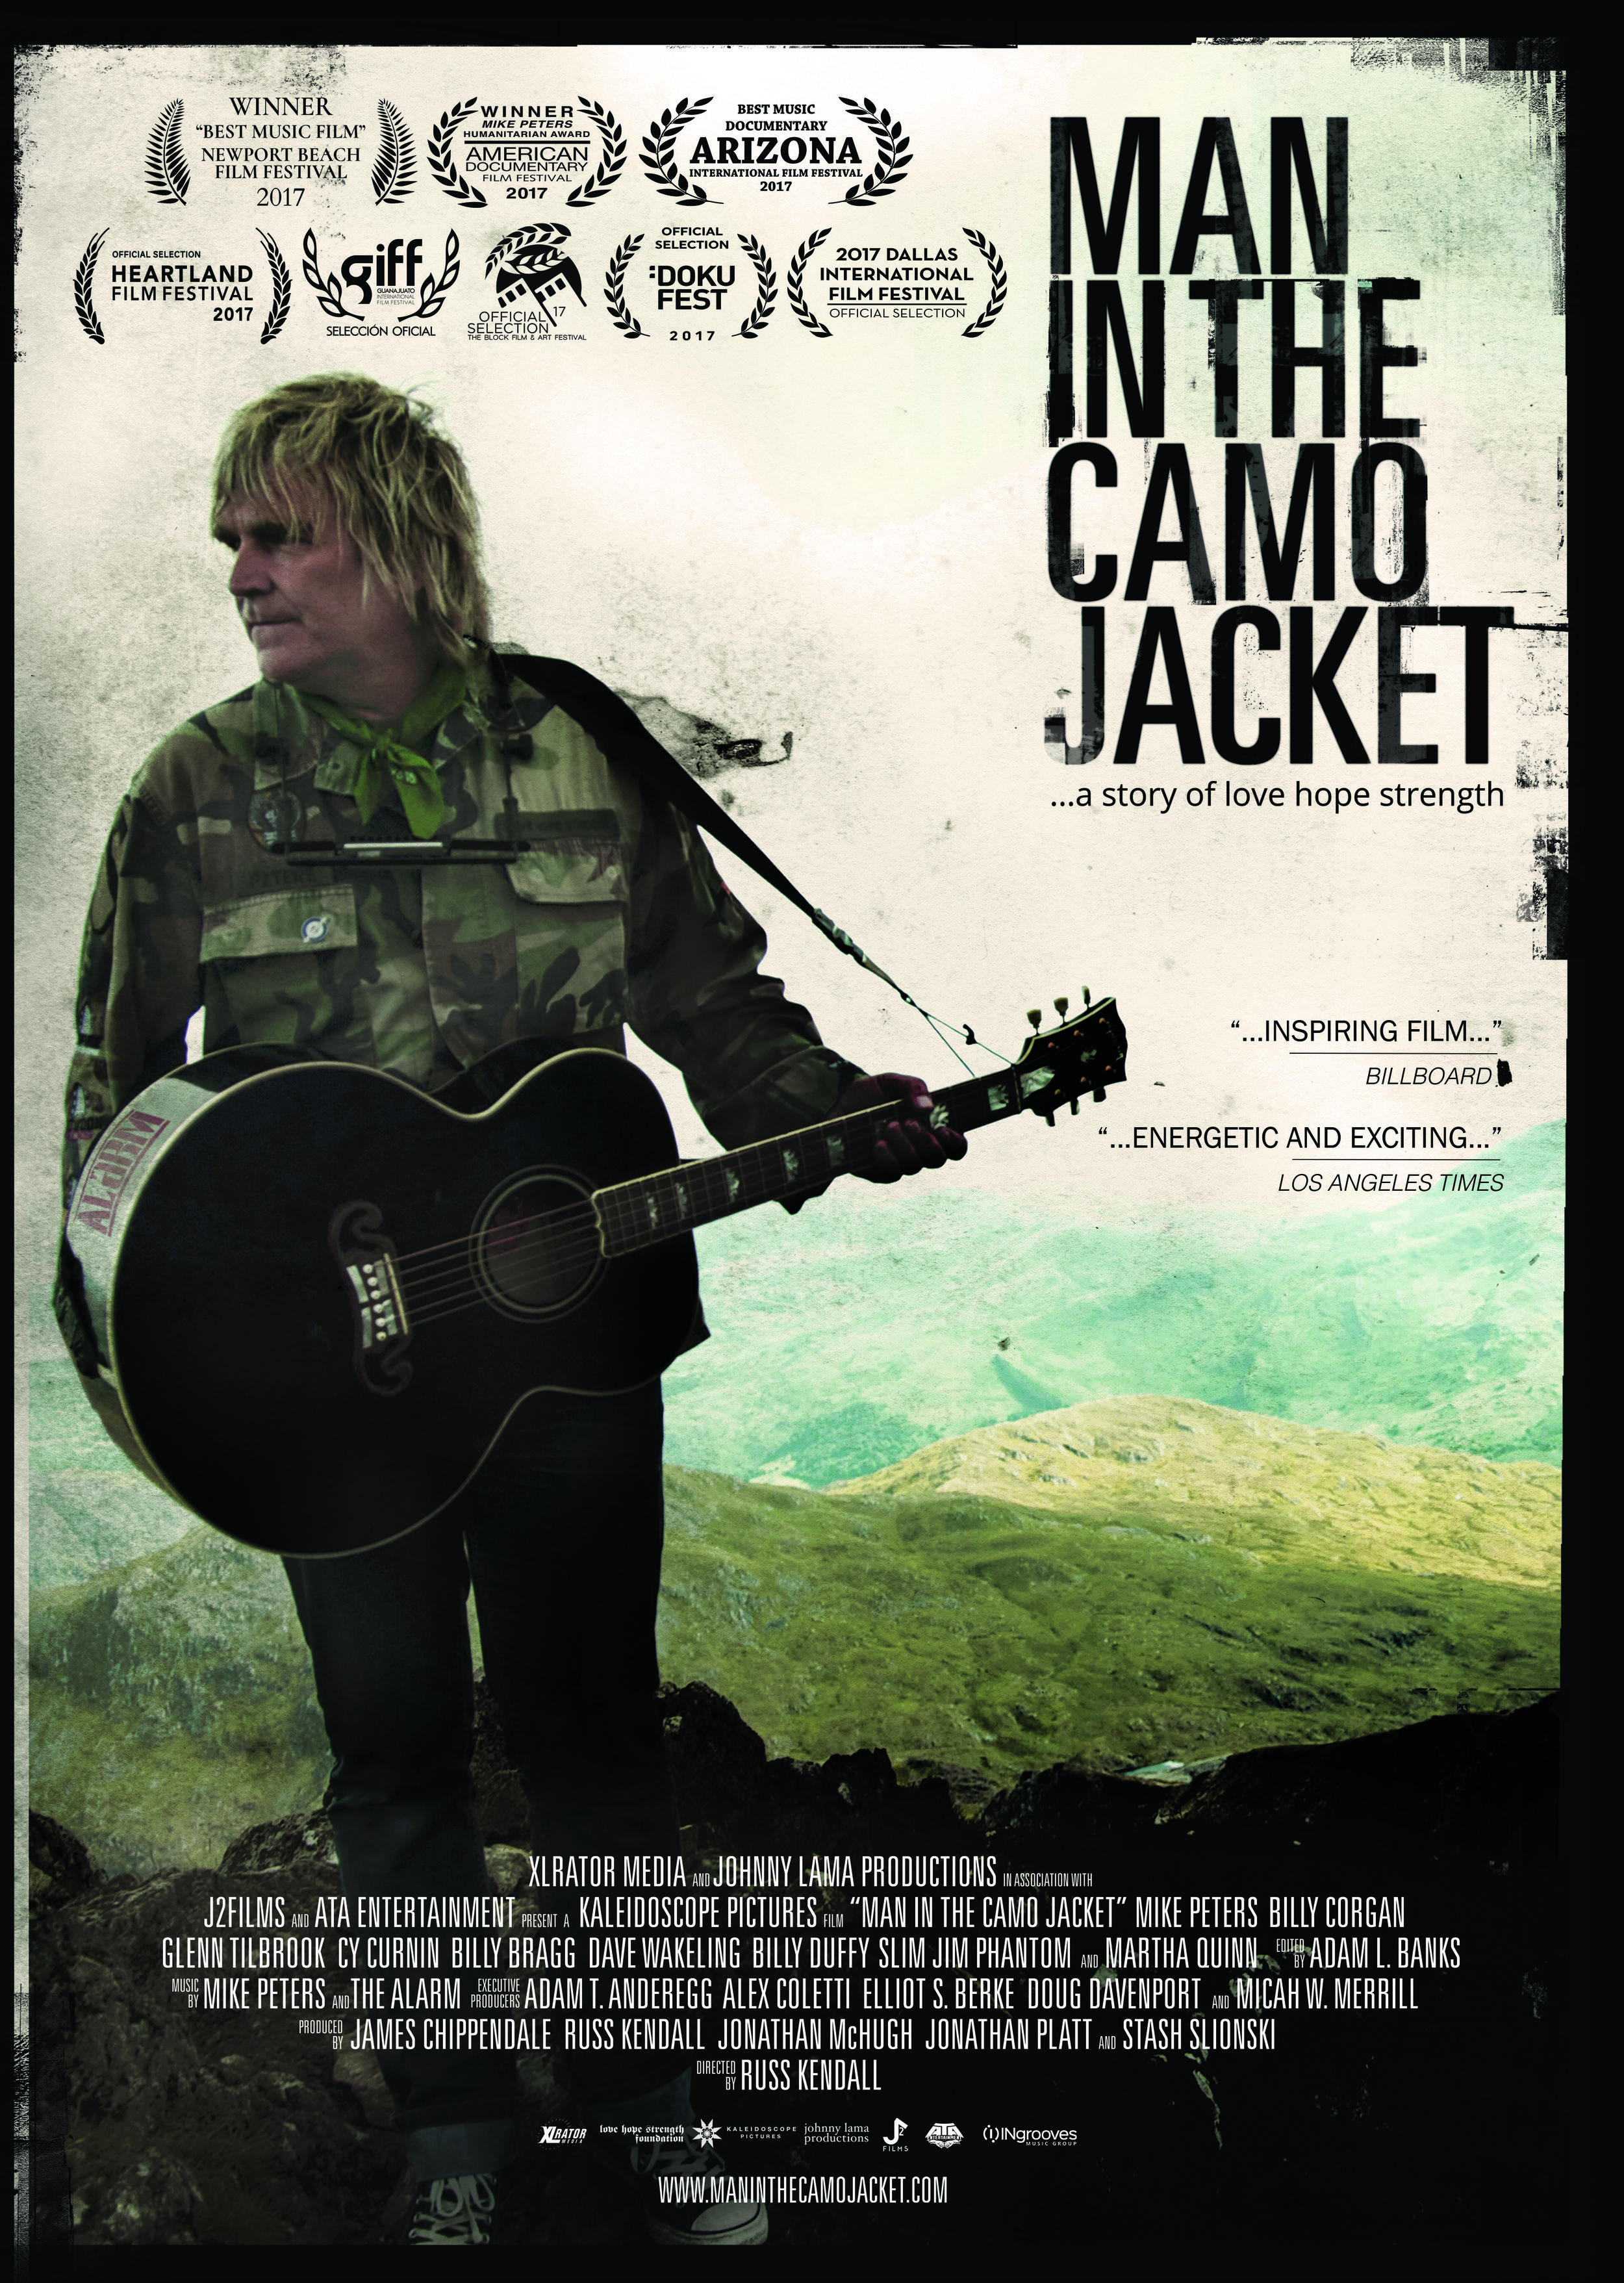 Man in the Camo Jacket - Featuring one-of-a-kind performances from legendary rock musicians, Man in the Camo Jacket unfolds Mike Peter's evolution from teenage punk rocker in a seaside town on North Wales, to the top of the world, to the harrowing depths of cancer treatment and his inspiring fight back.Available Now on iTunes and AMAZONWatch the TrailerWebsite